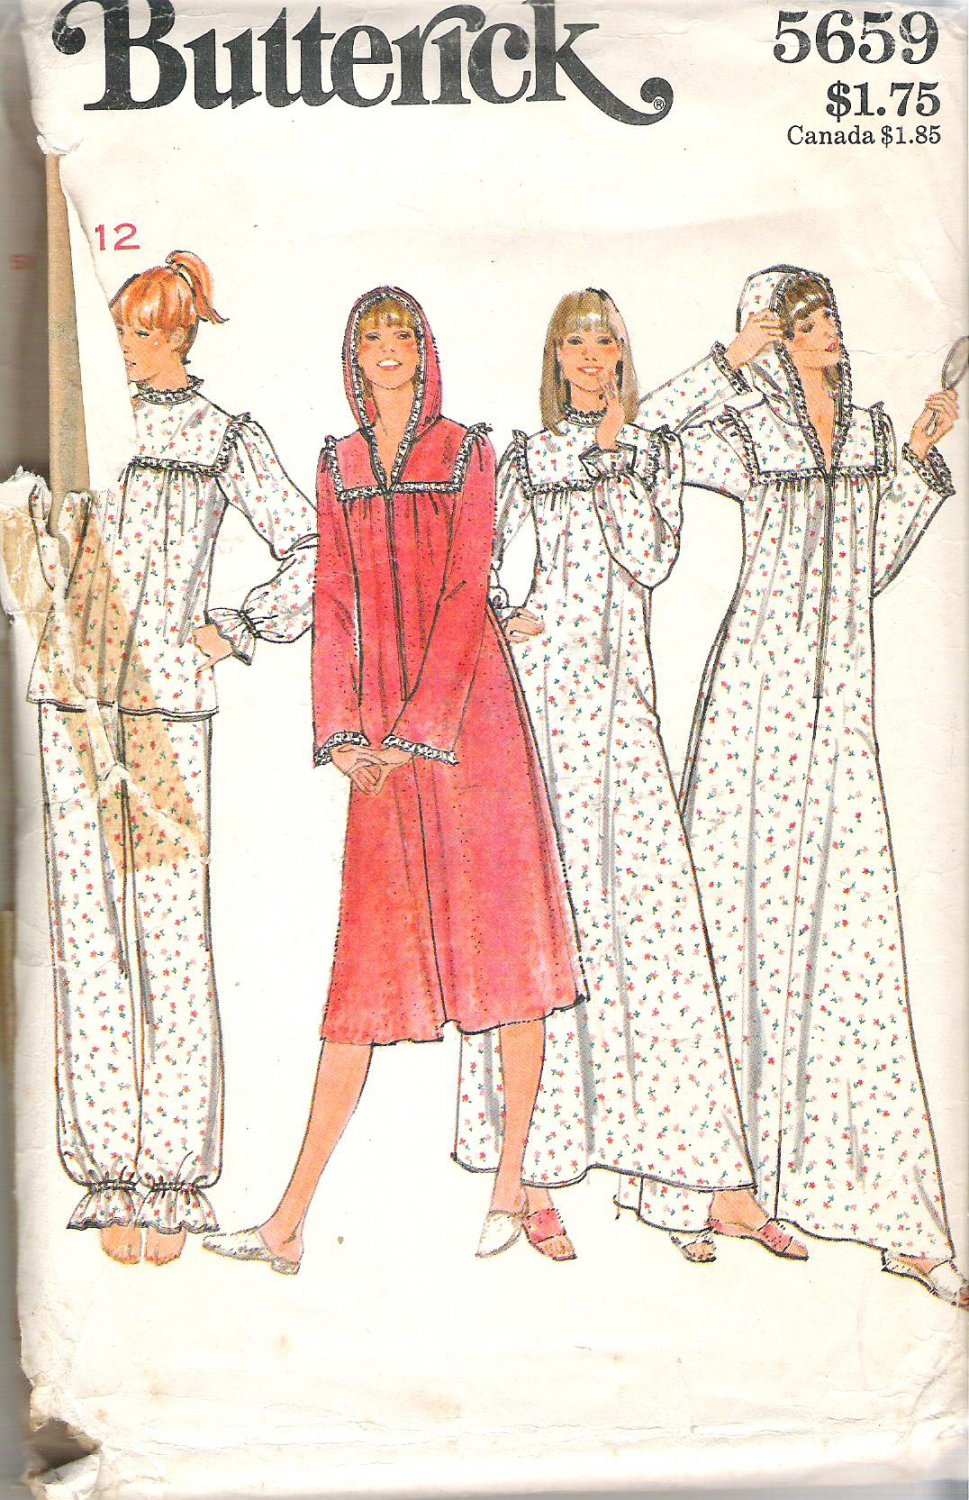 Butterick 5659 Pattern Pajamas Nightgown Robe with Hood  Size 12  Part Cut